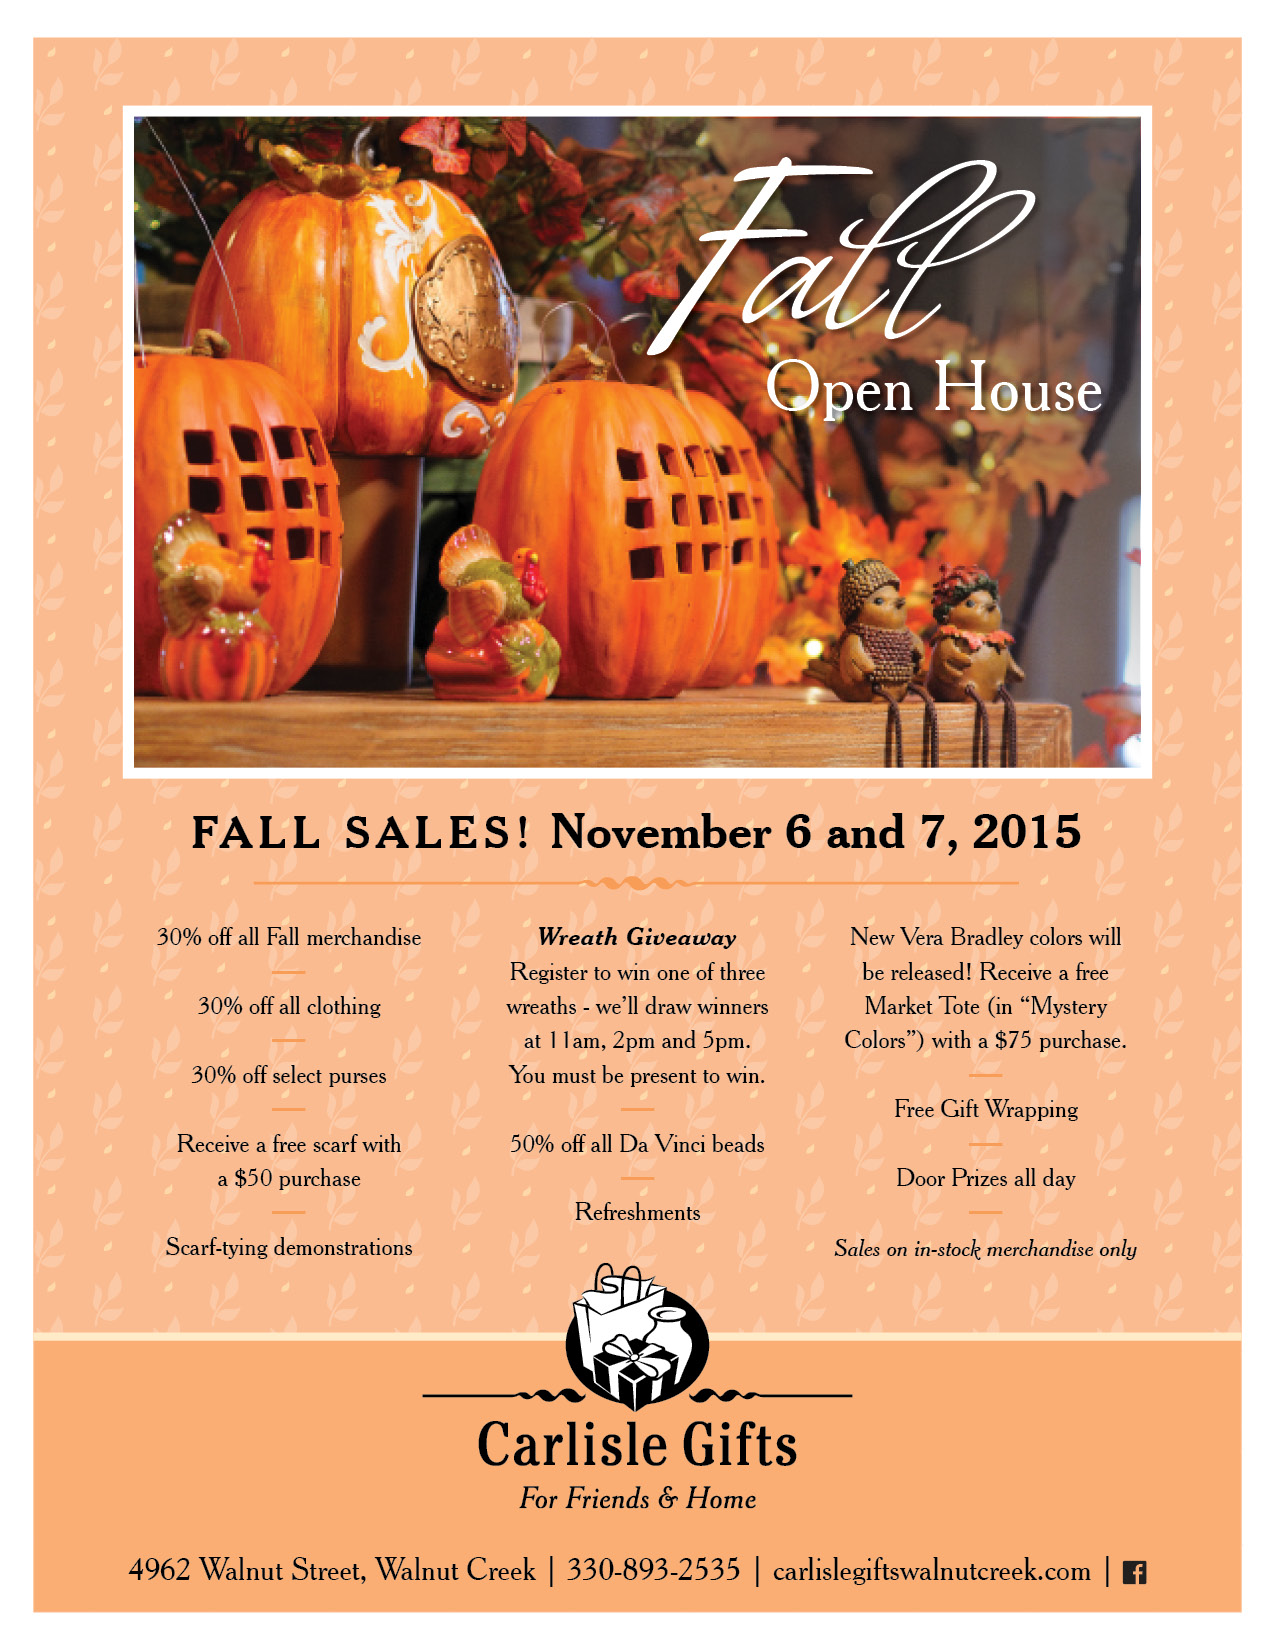 Carlisle Gifts' Fall Open House